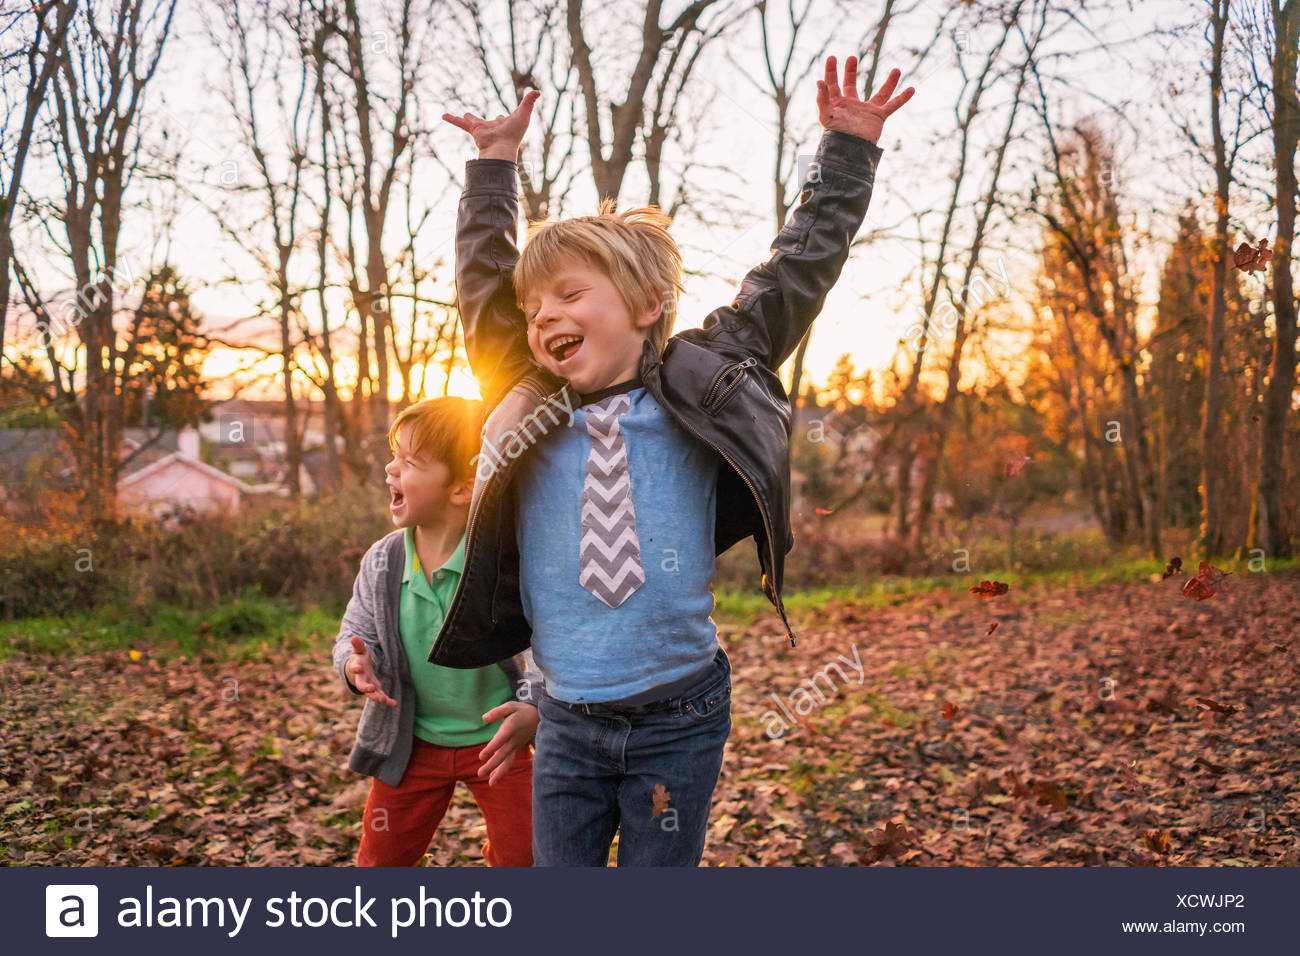 Two boys messing about with autumn leaves - Stock Image